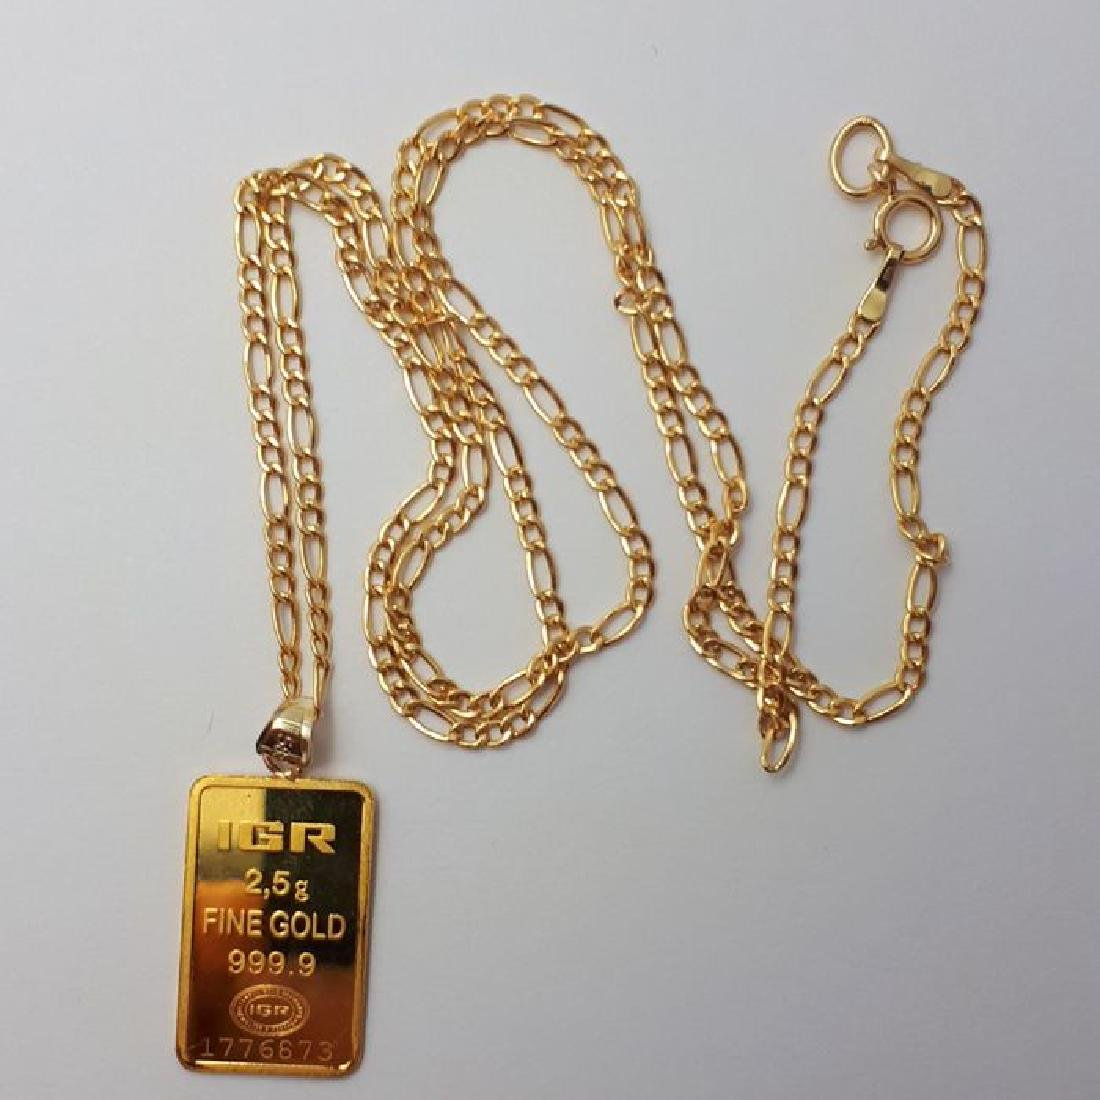 14 ct Yellow Gold Chain & 2.5g Bullion Gold Pendant